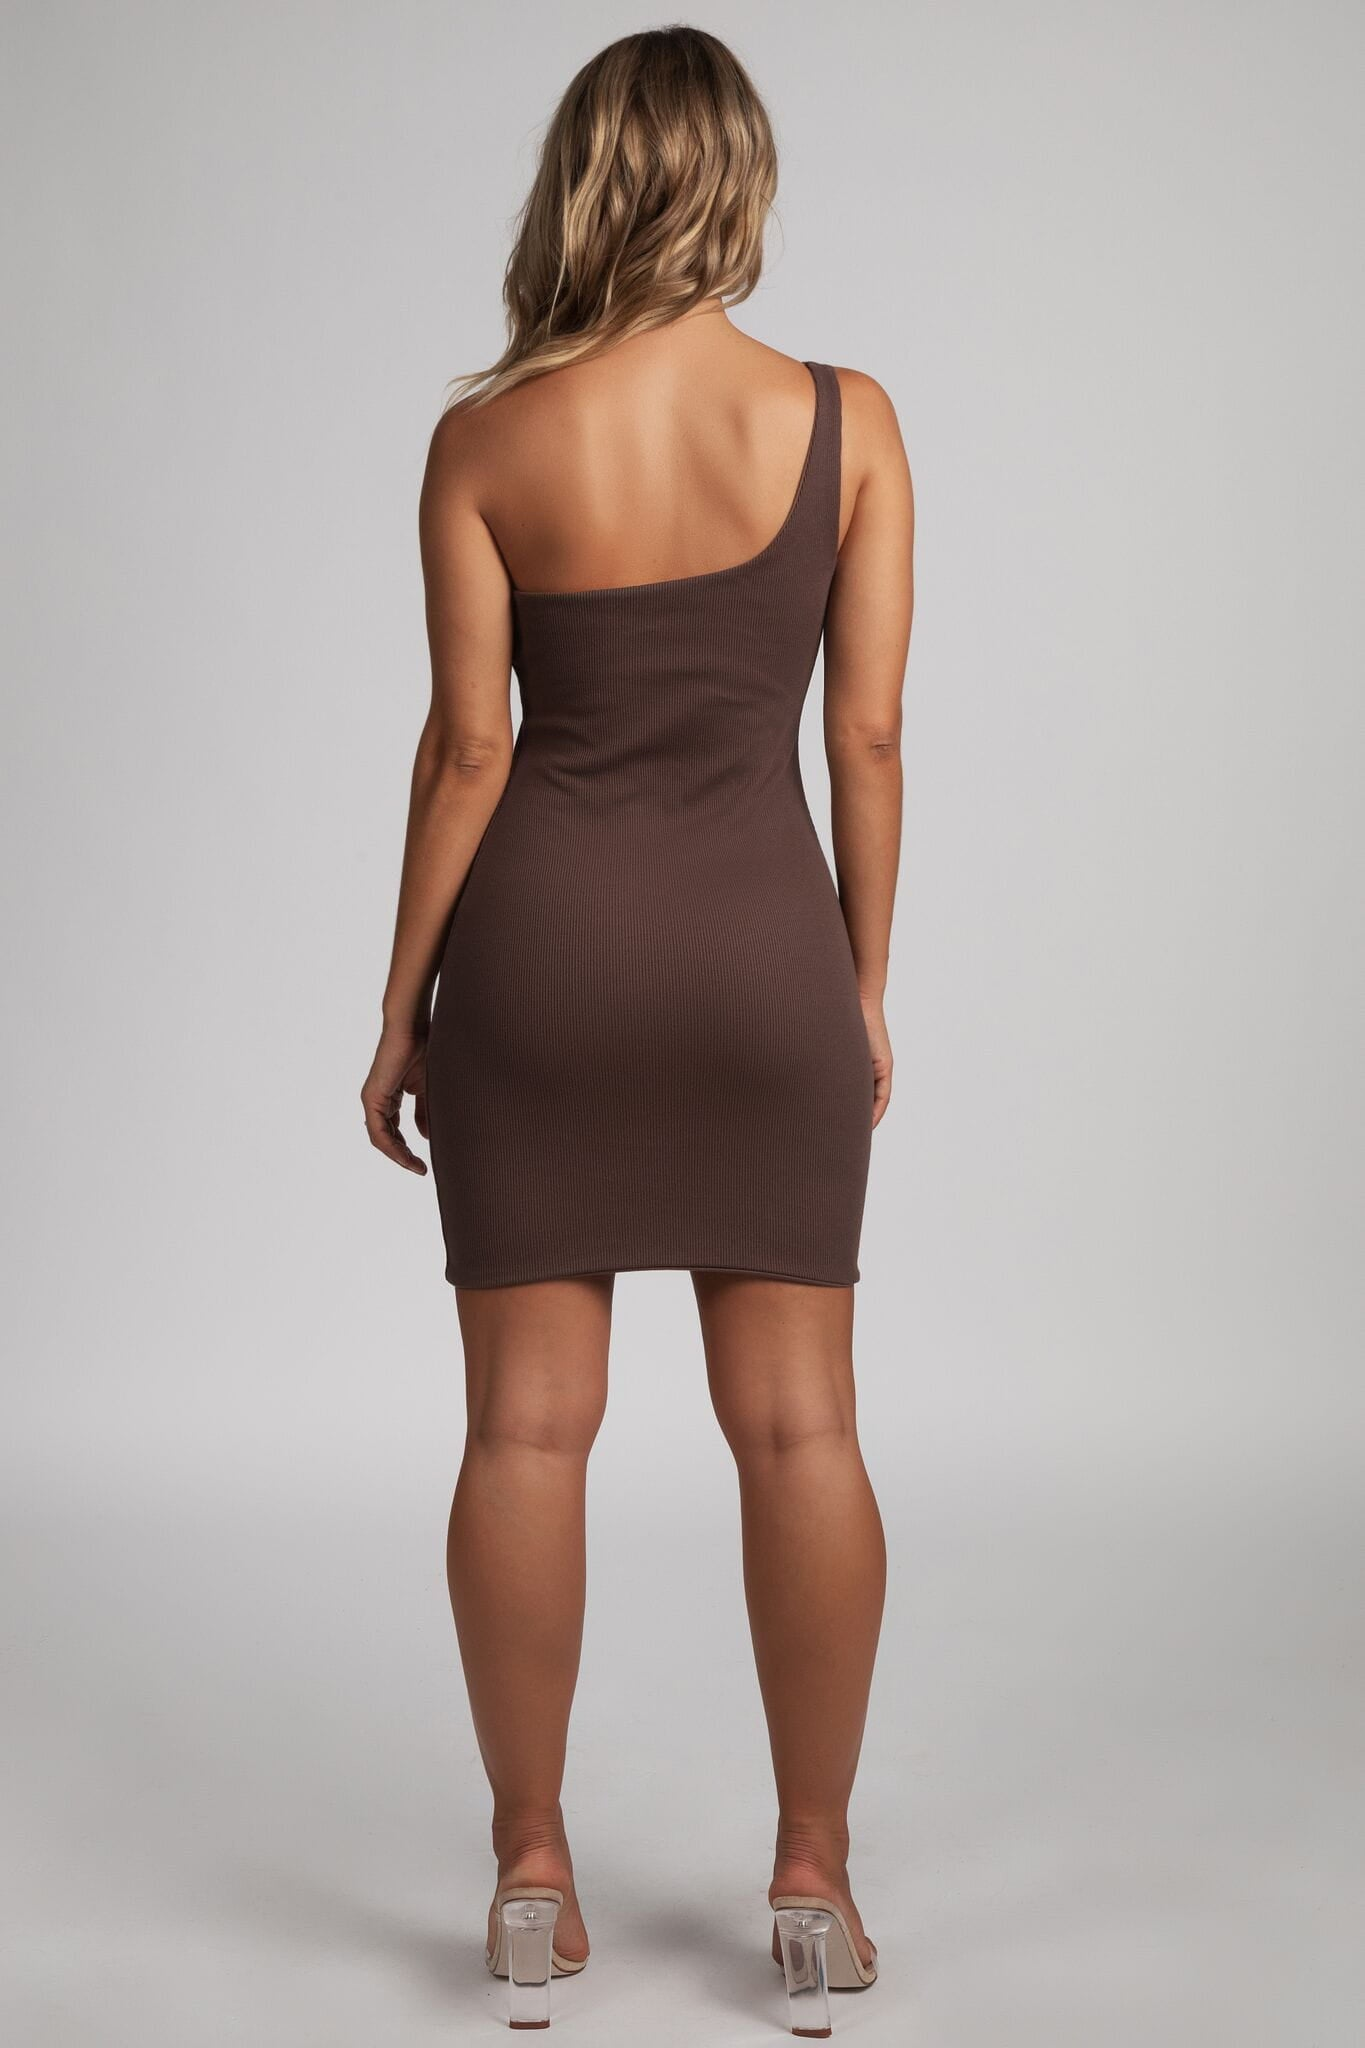 f799dfcdb1d9 Scarlett One-Shoulder Bodycon Rib Mini Dress - Chocolate - MESHKI